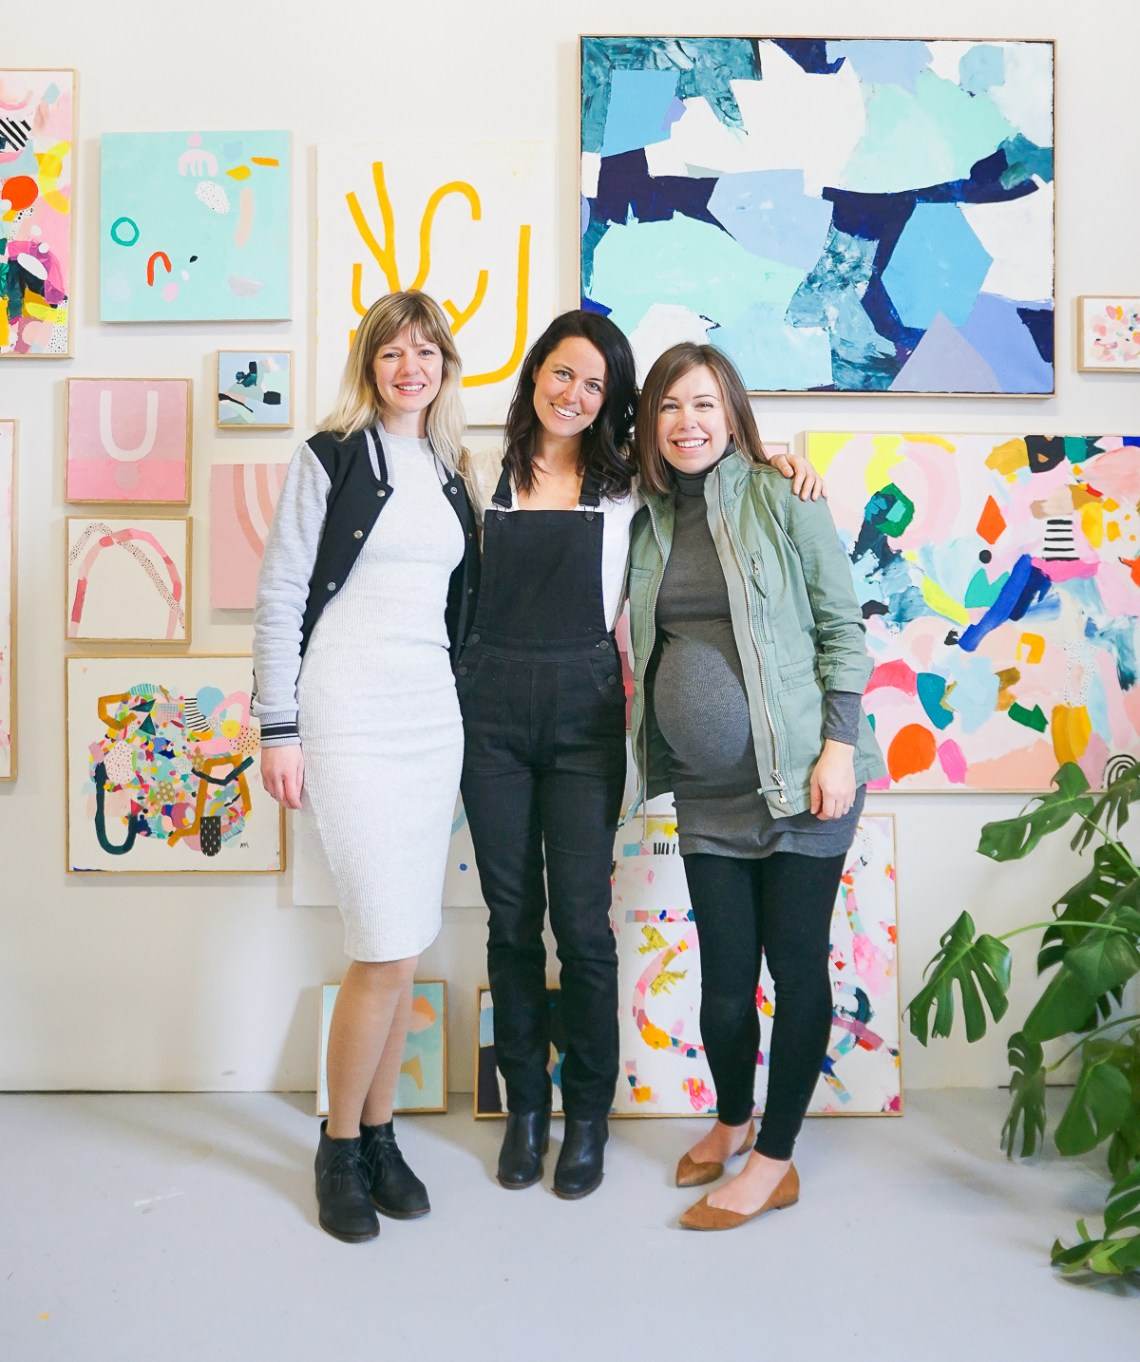 Come peek inside the bright and colorful studio of painter and illustrator, Ashley Mary of Ashley Mary Art!